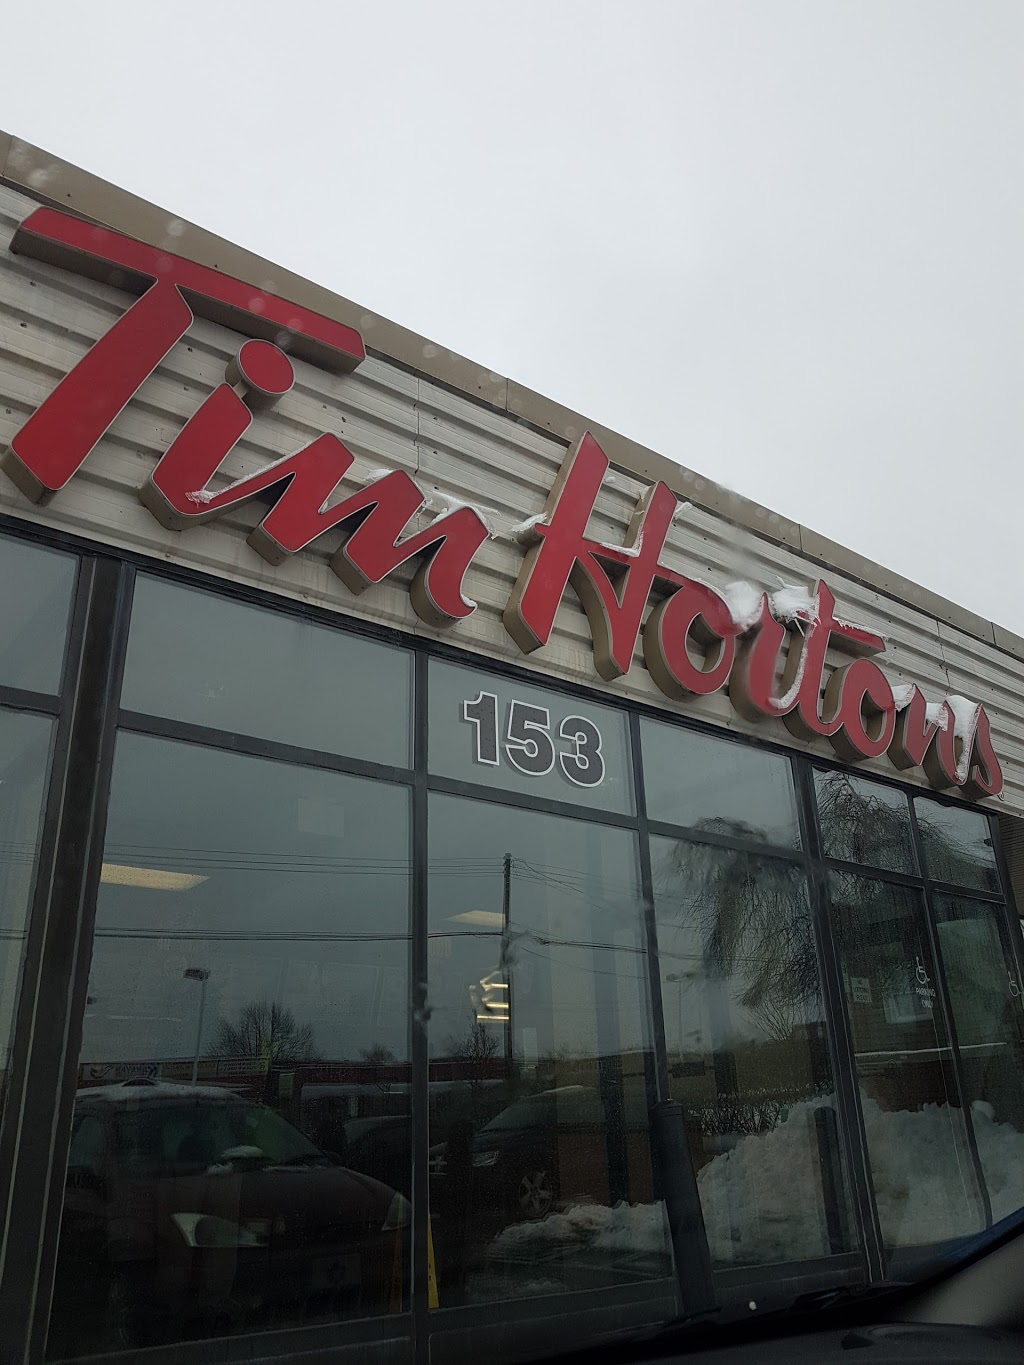 Tim Hortons | cafe | 116 Wyse Rd, Dartmouth, NS B3A 1M3, Canada | 9024631296 OR +1 902-463-1296